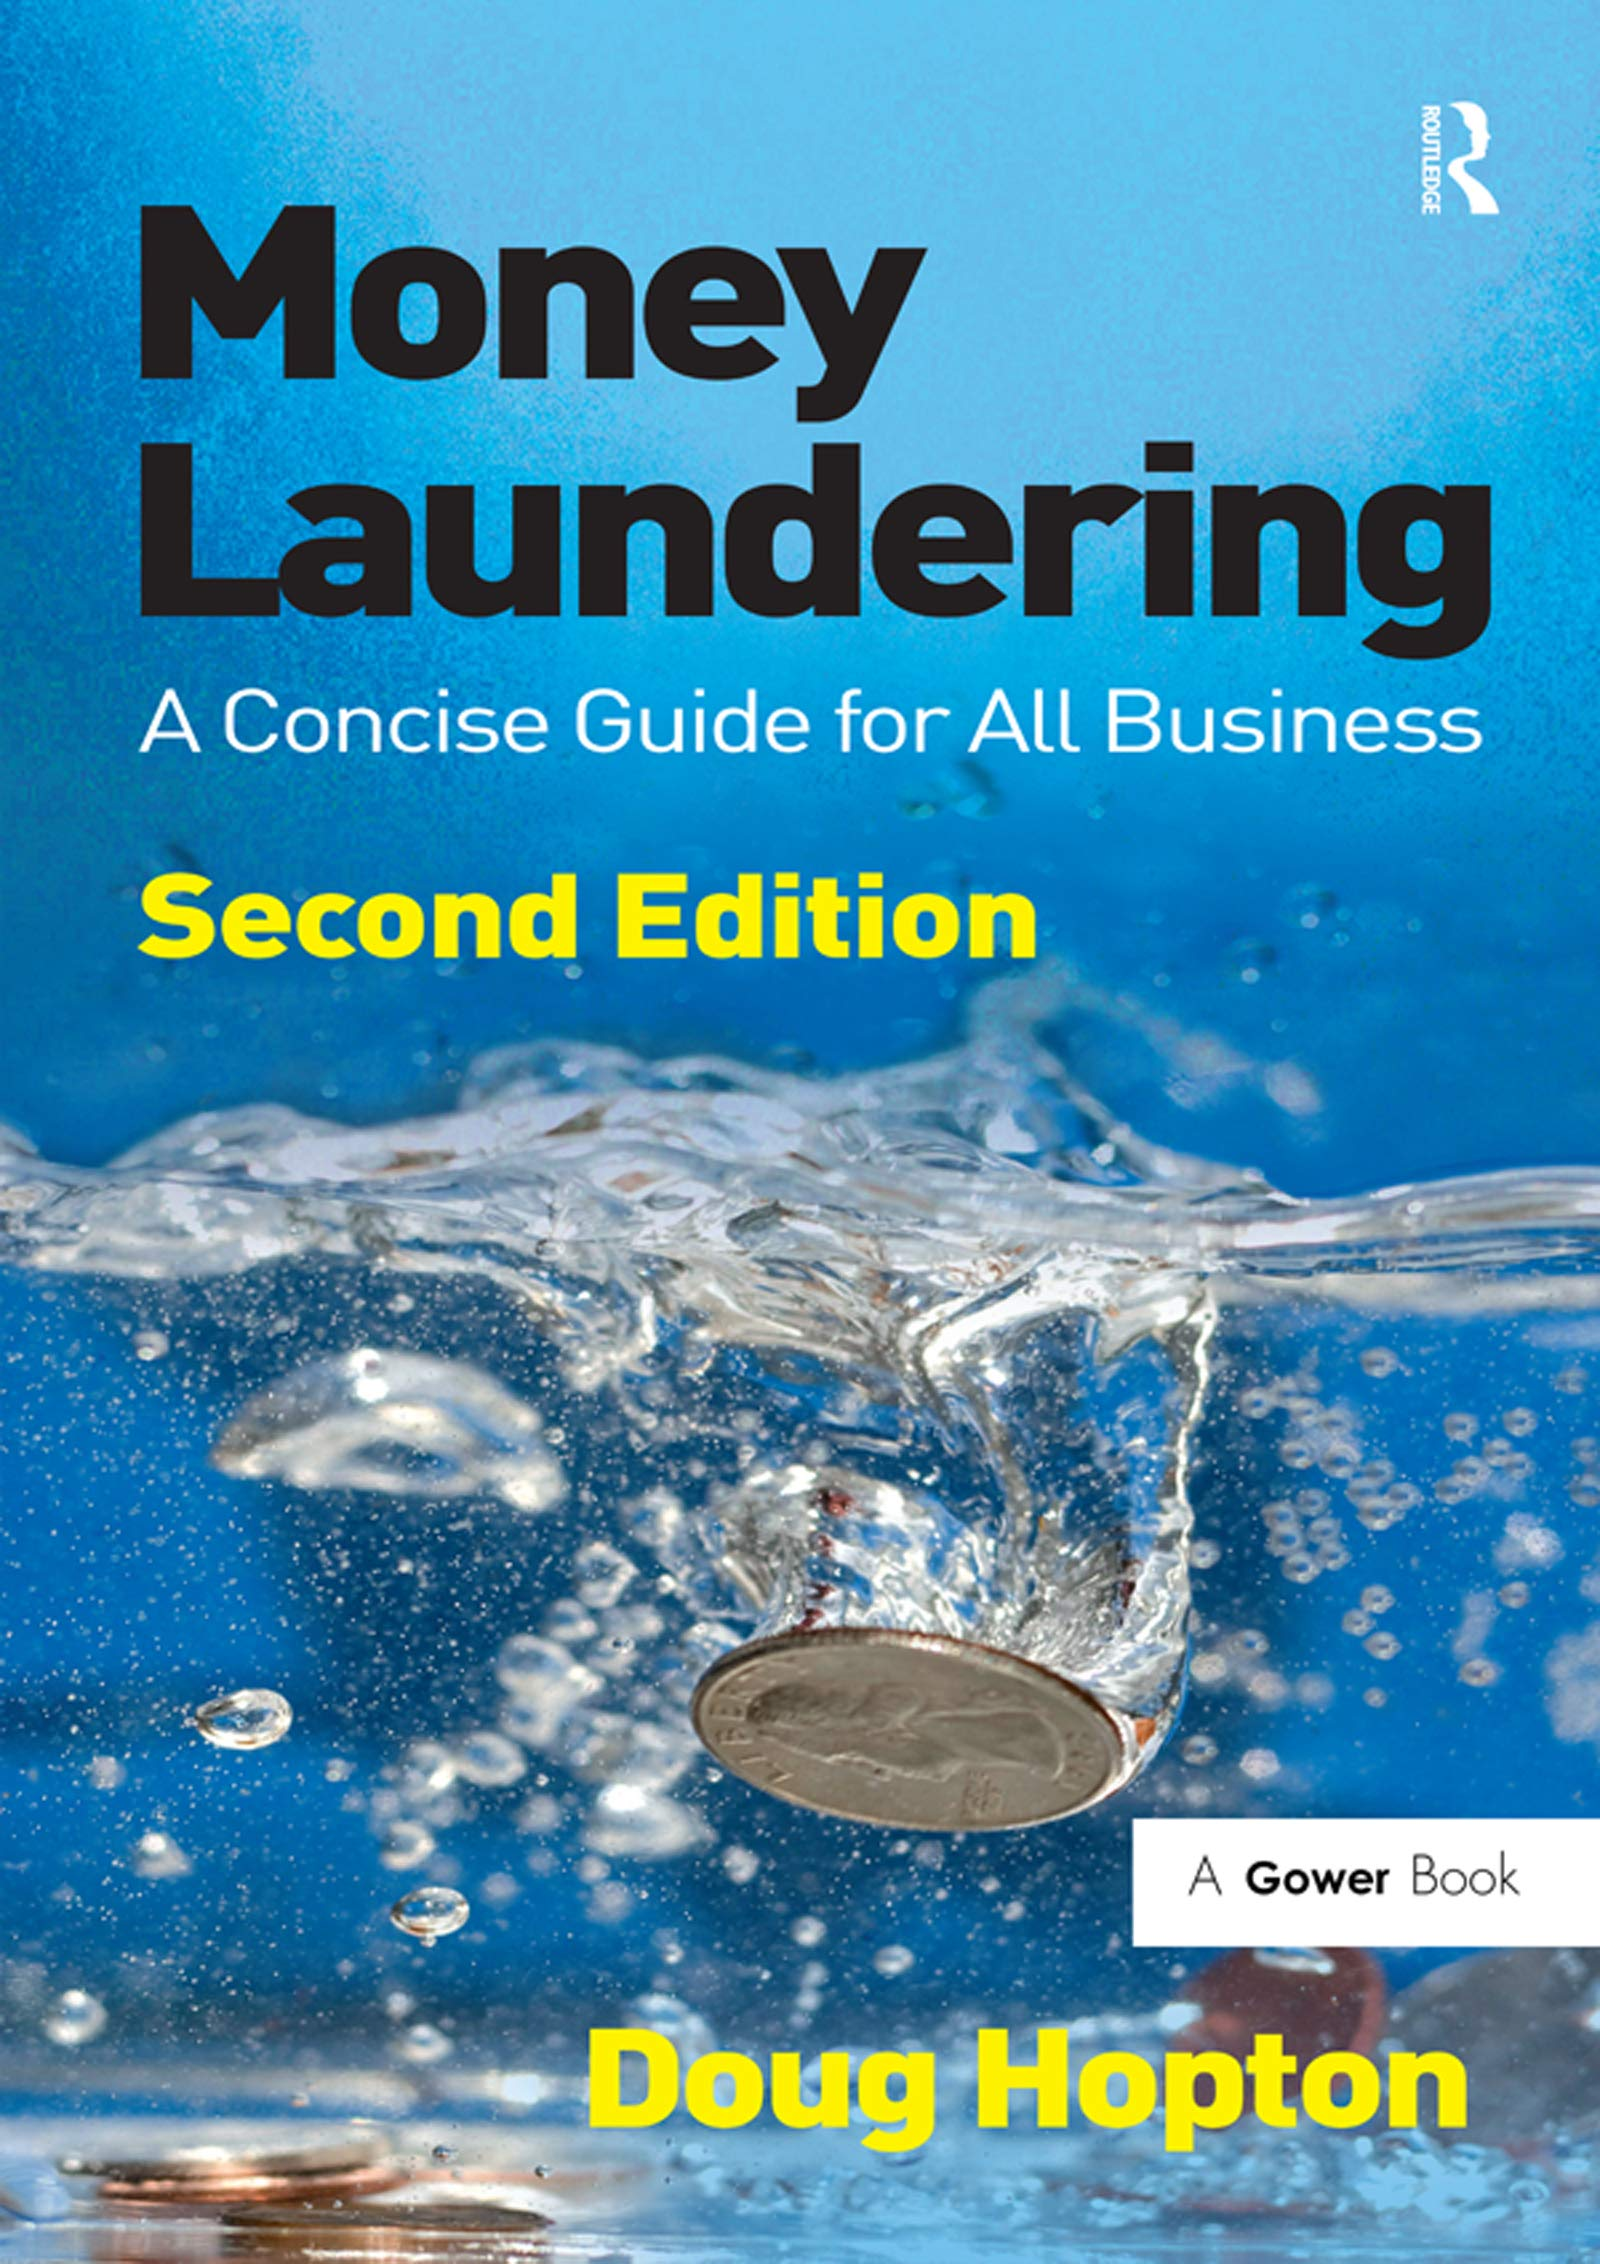 Money Laundering: A Concise Guide for All Business